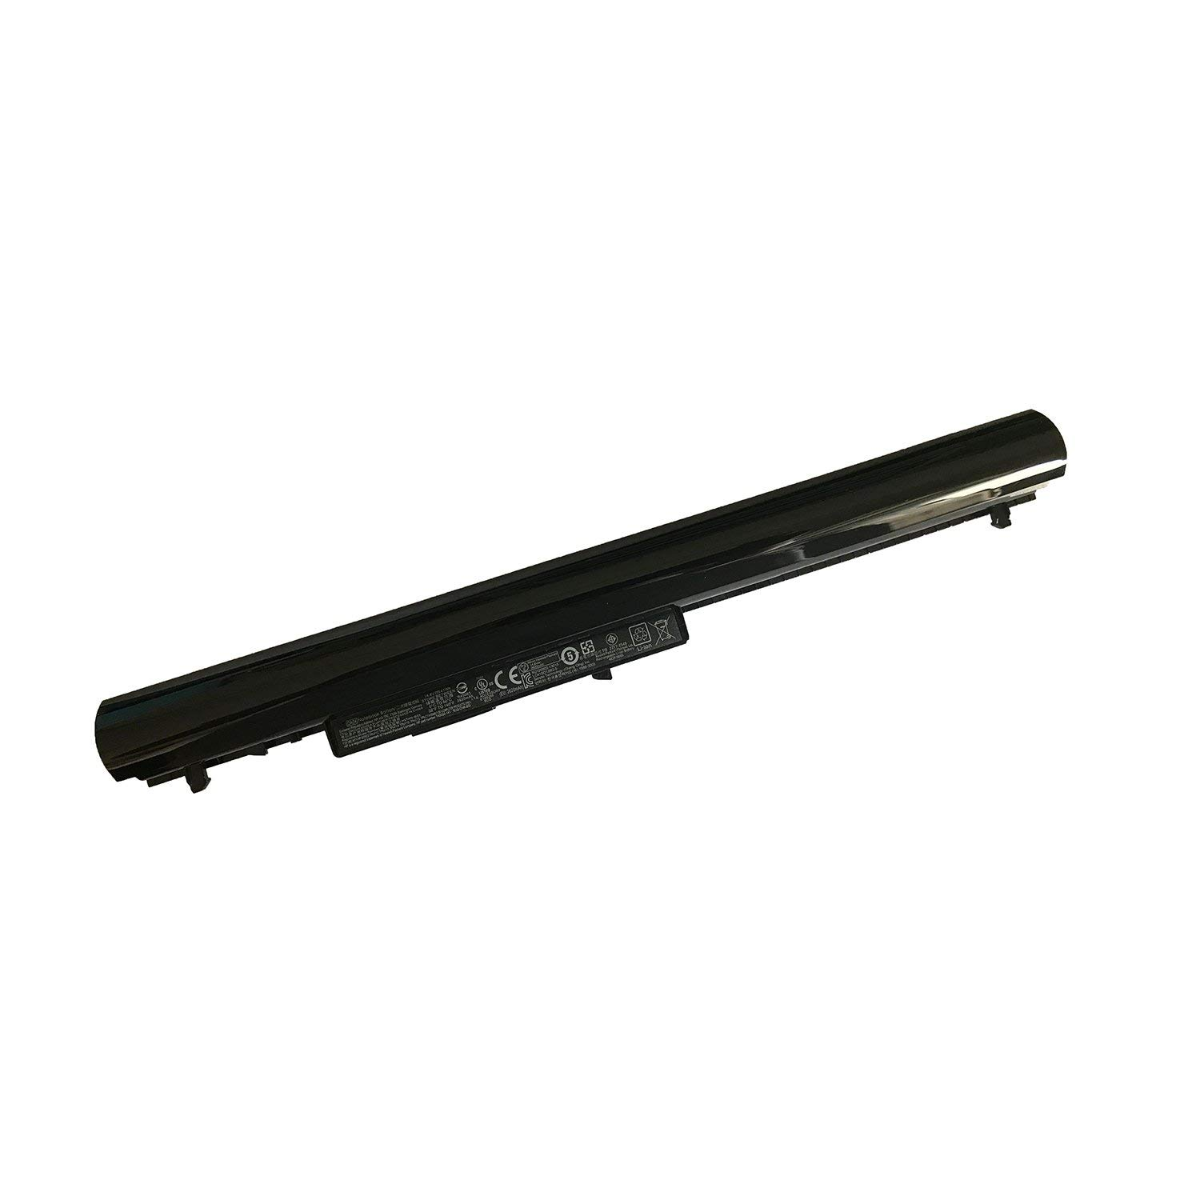 Μπαταρία Laptop - Battery for HP 15-R186UR 15-R187UR 15-R189NG 15-R194UR 15-R195UR 15-R196NR 15-R197NR 15-R198NR 15-R200 OEM Υψηλής ποιότητας (Κωδ.1-BAT0002)